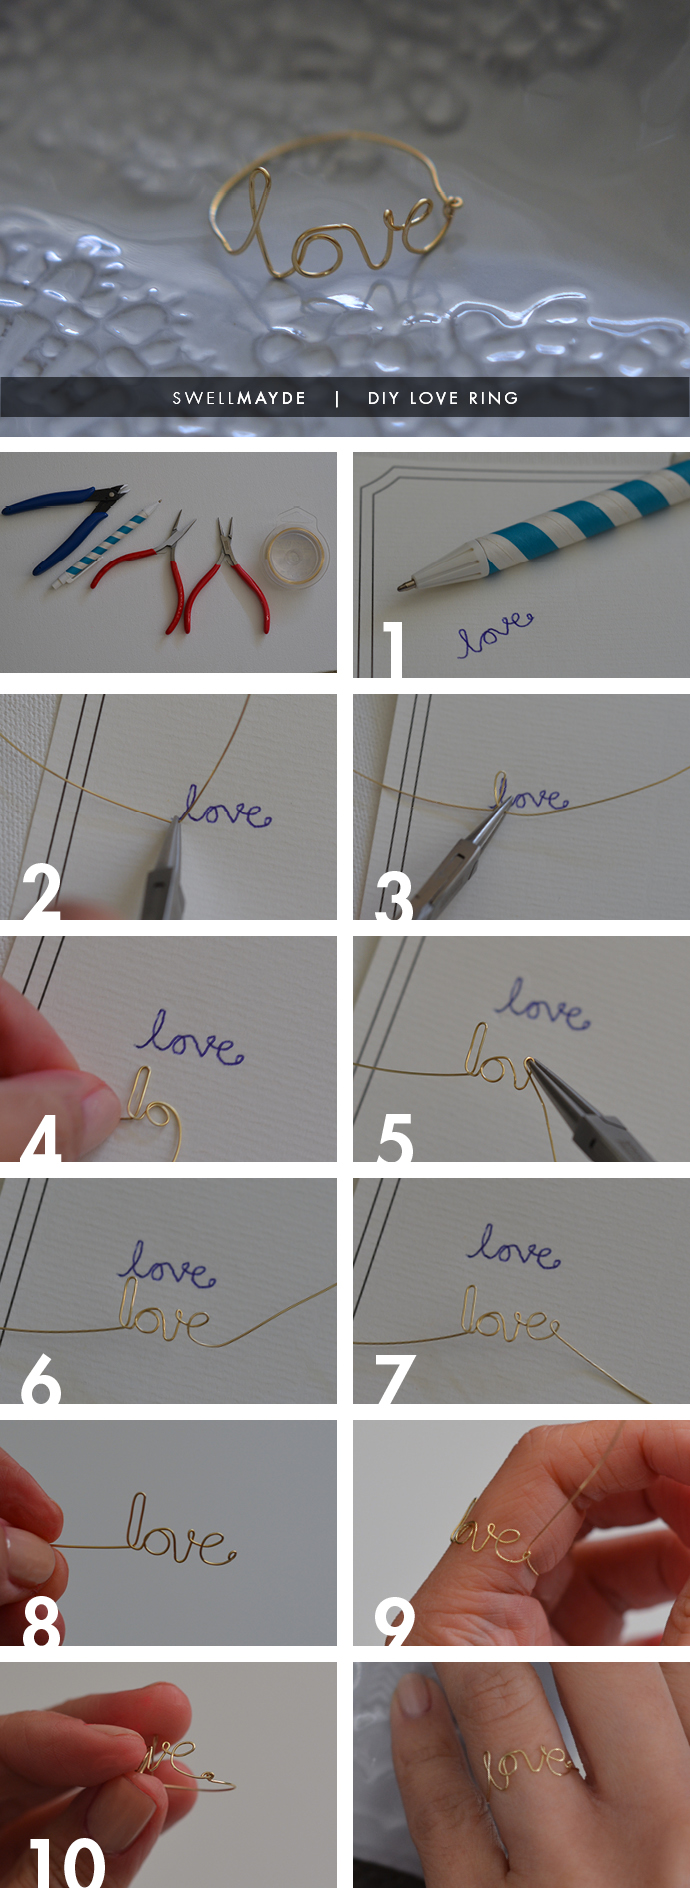 swellmayde: VALENTINE'S DIY | WIRE LOVE RING